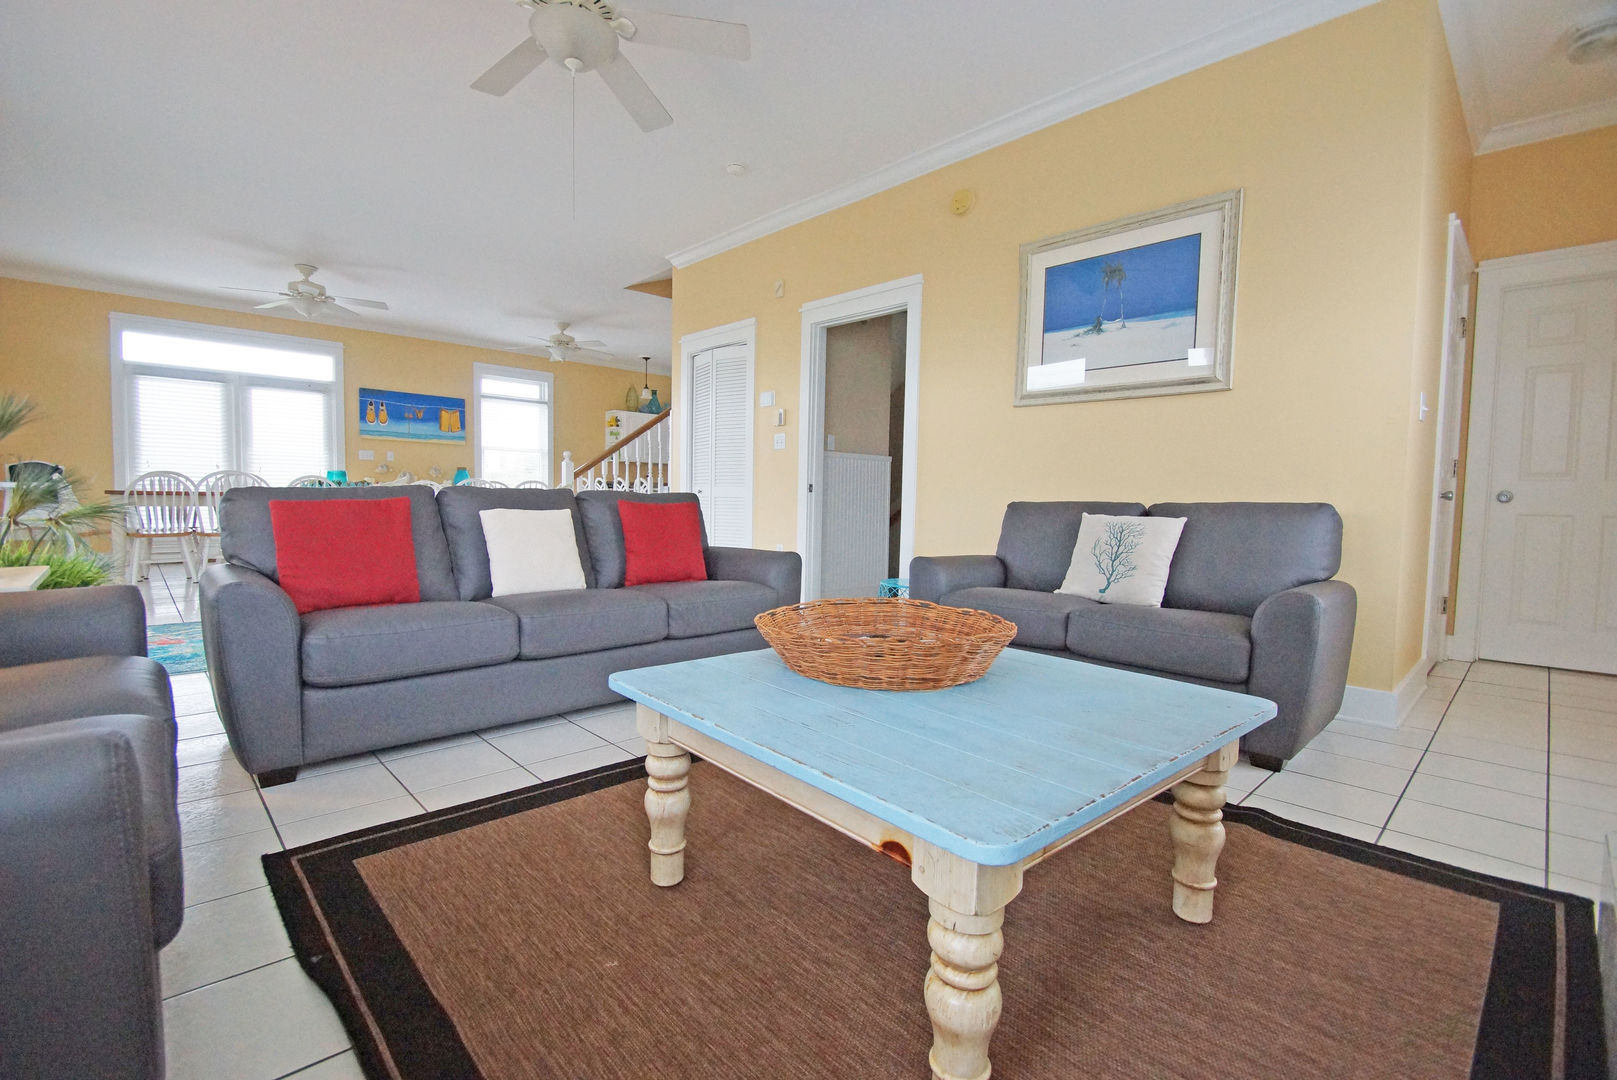 Sofas, Coffee Table, Ceiling Fan, Dining Set, and Windows.